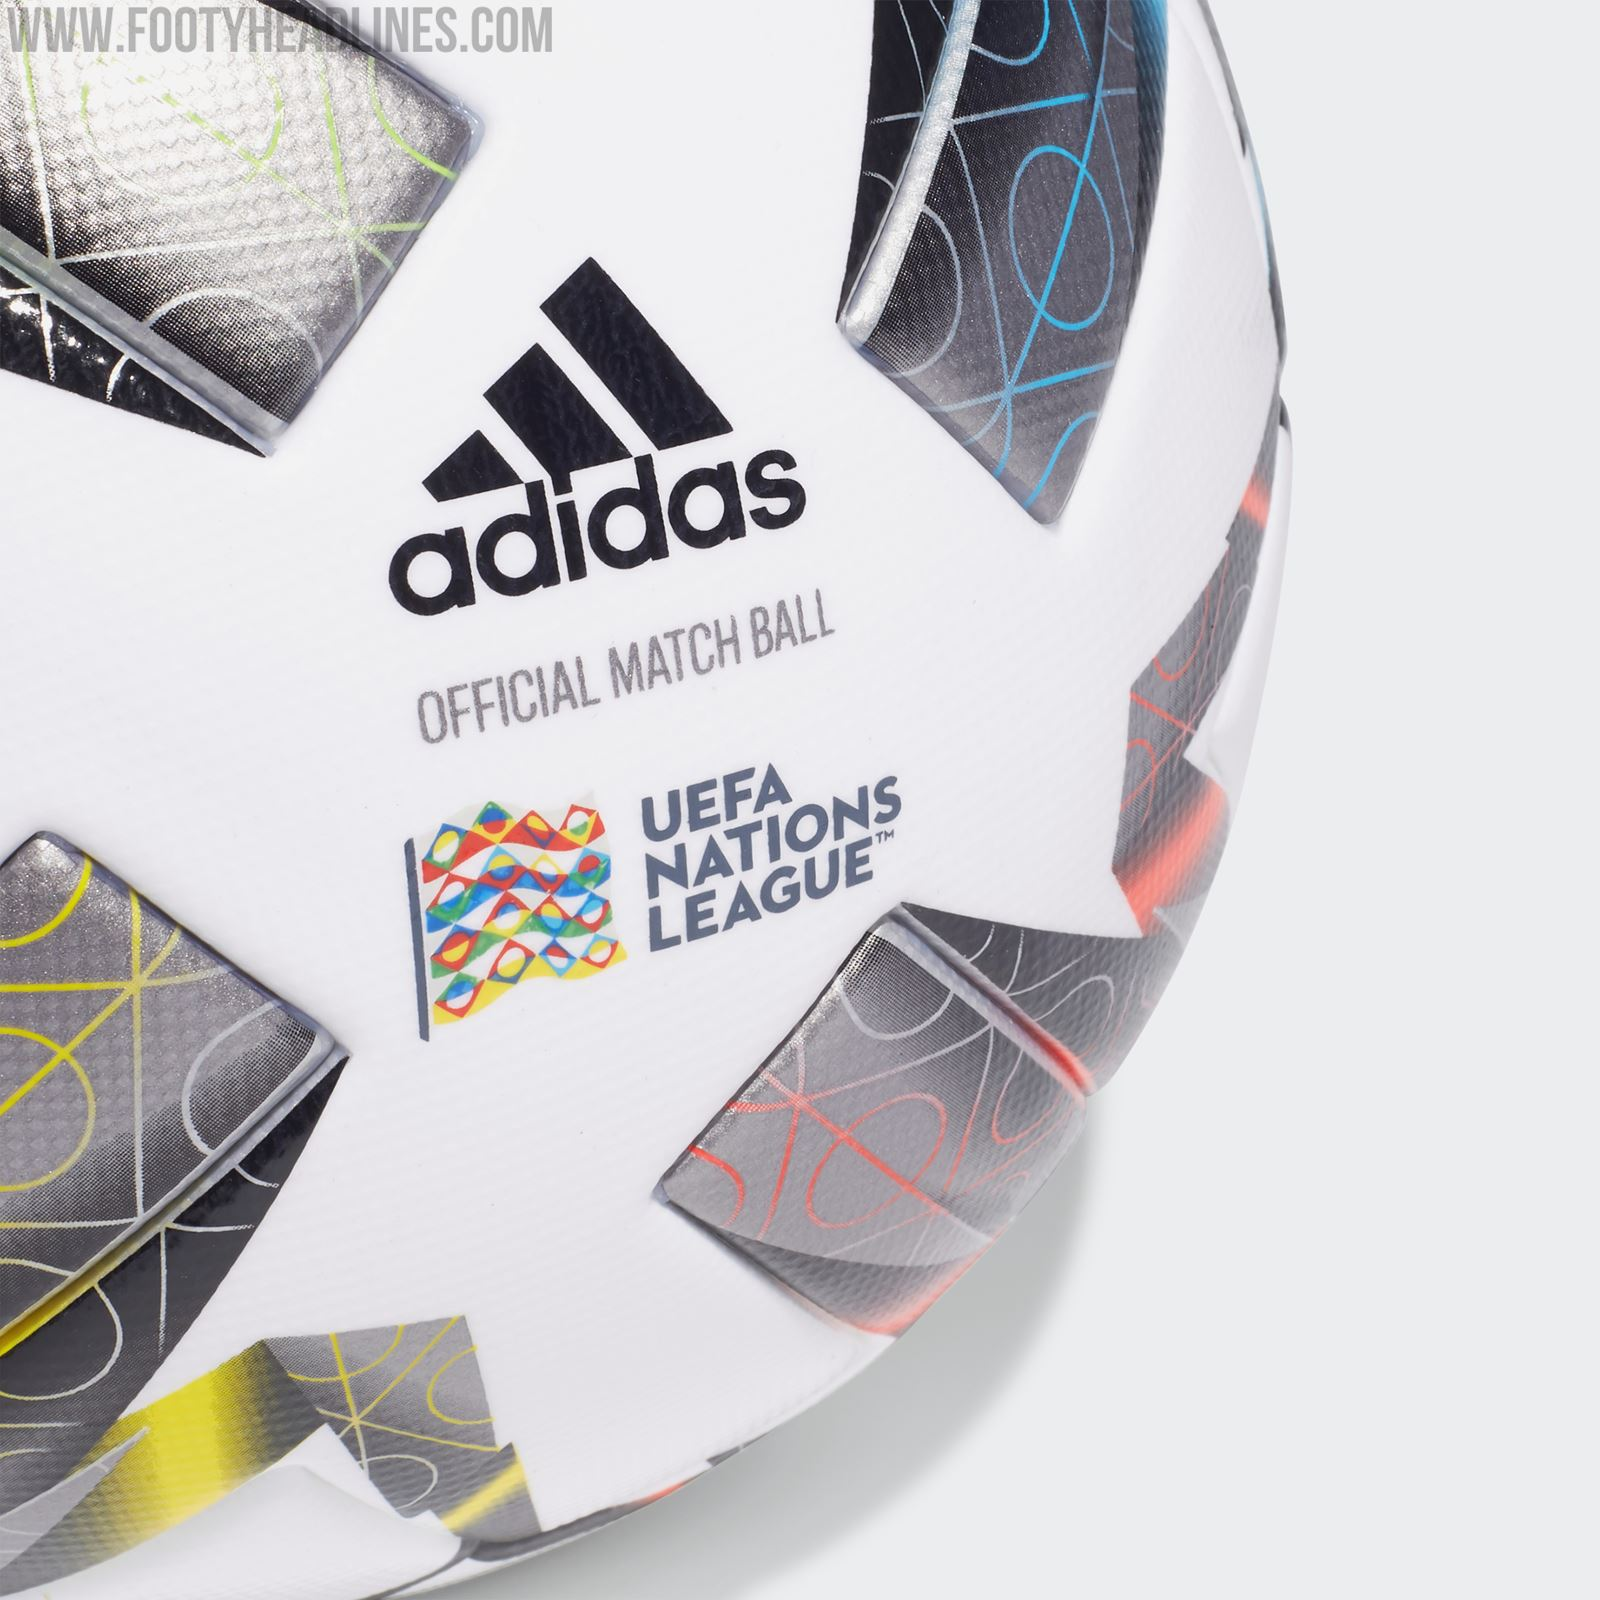 Adidas UEFA Nations League 2020-2021 Ball Released - Footy ...